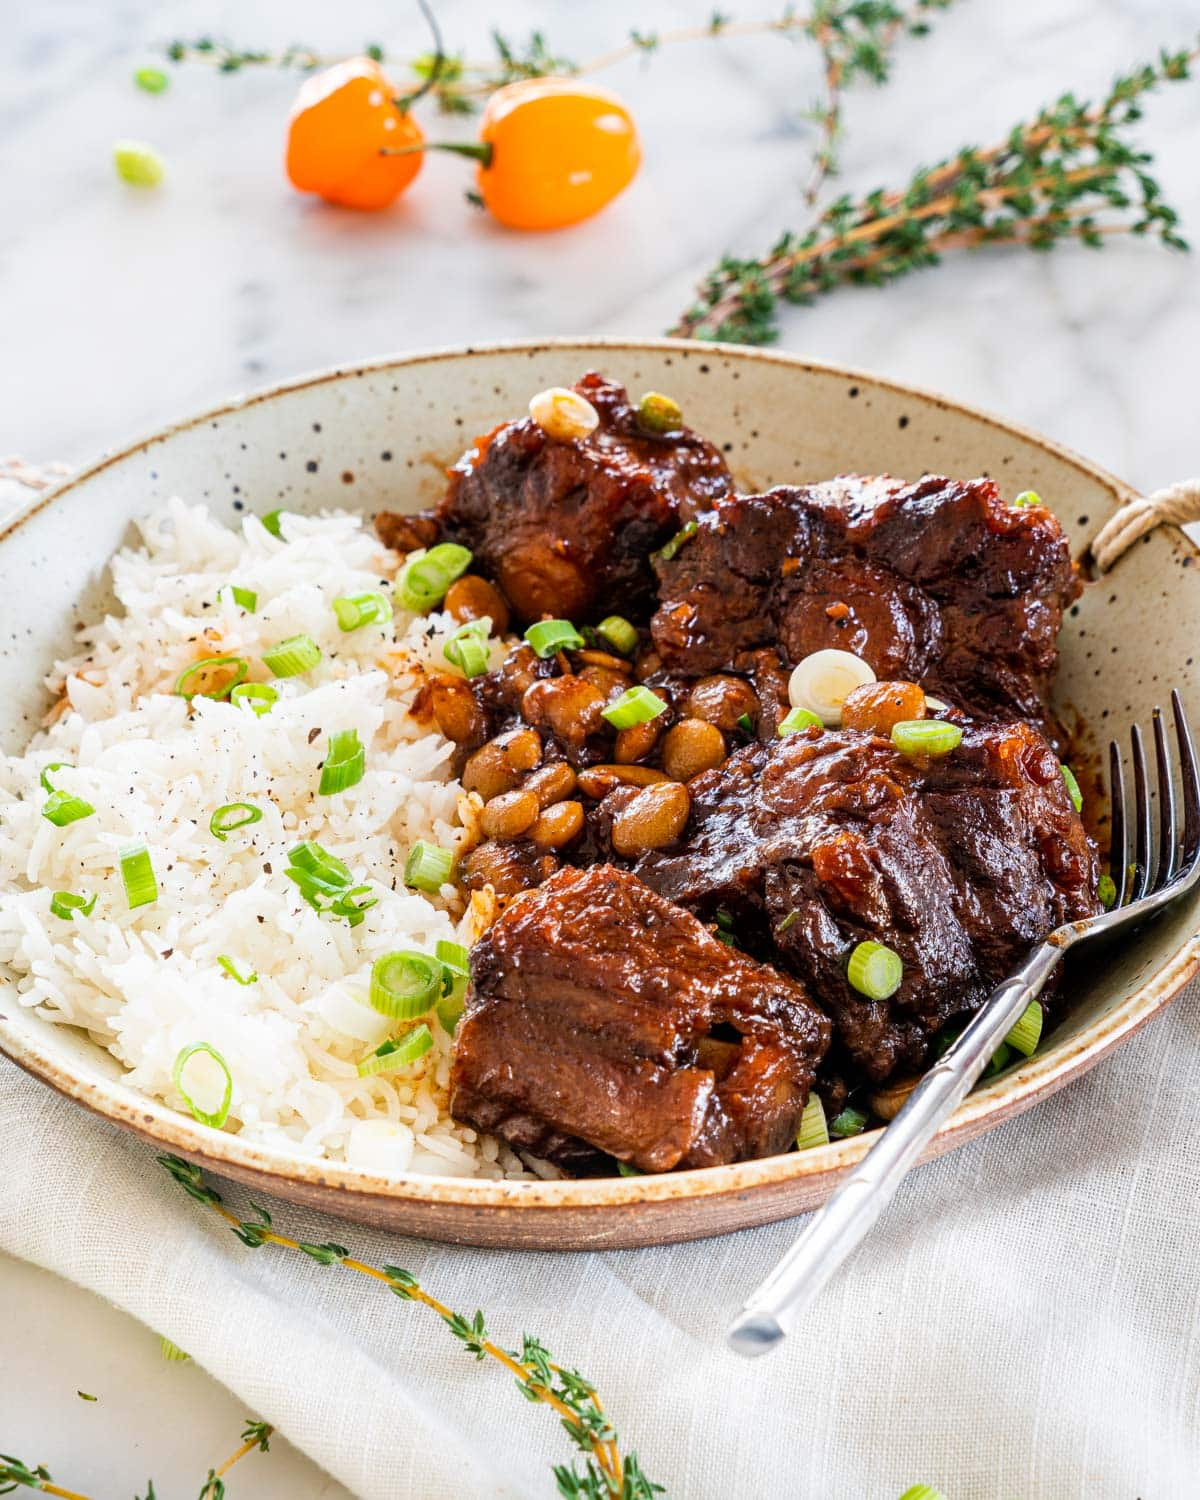 oxtail stew with rice in a plate garnished with green onions